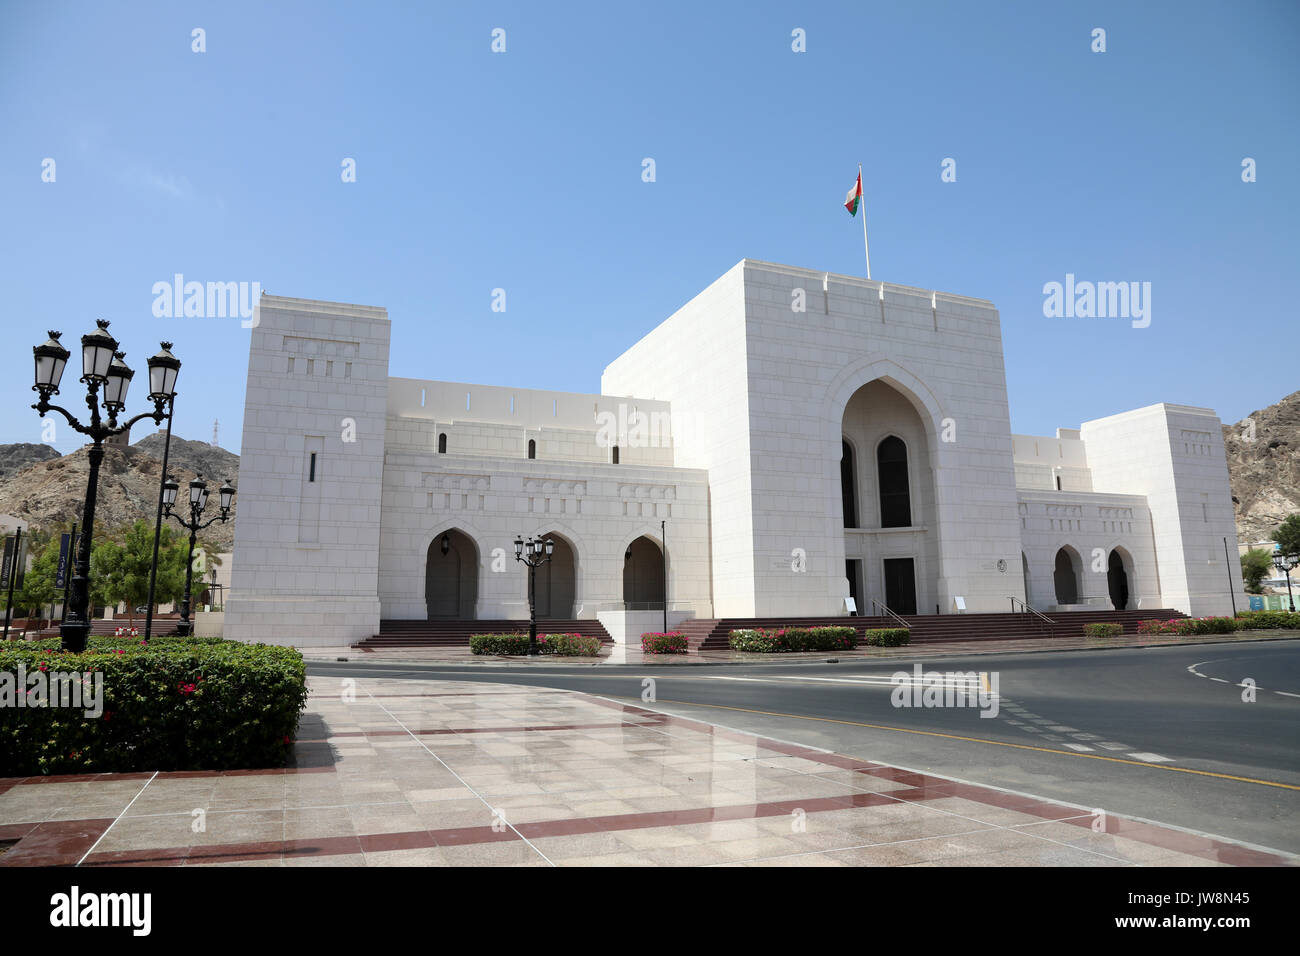 Oman Daily Life Stock Photos & Oman Daily Life Stock Images - Alamy